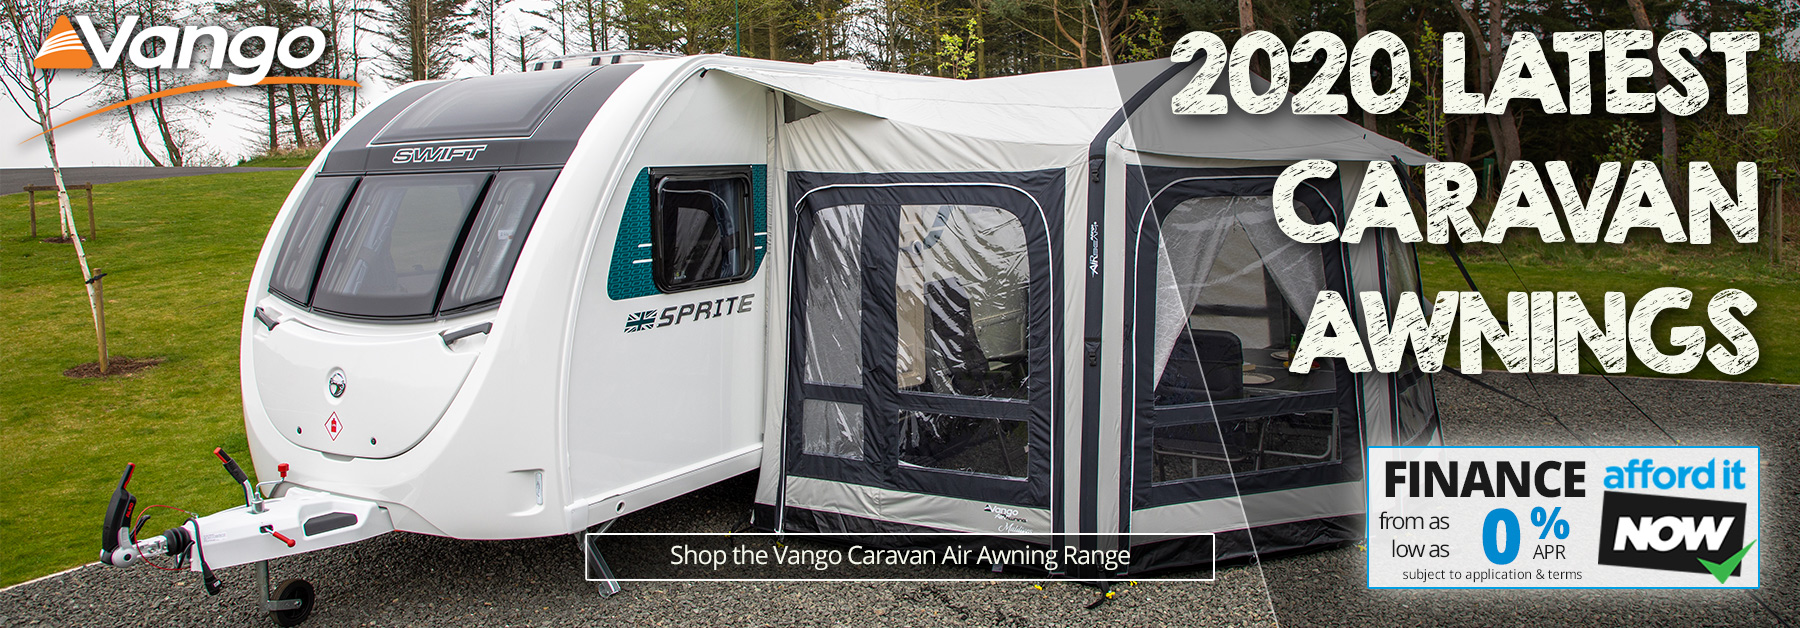 Vango Caravan Air Awnings - Newest Models